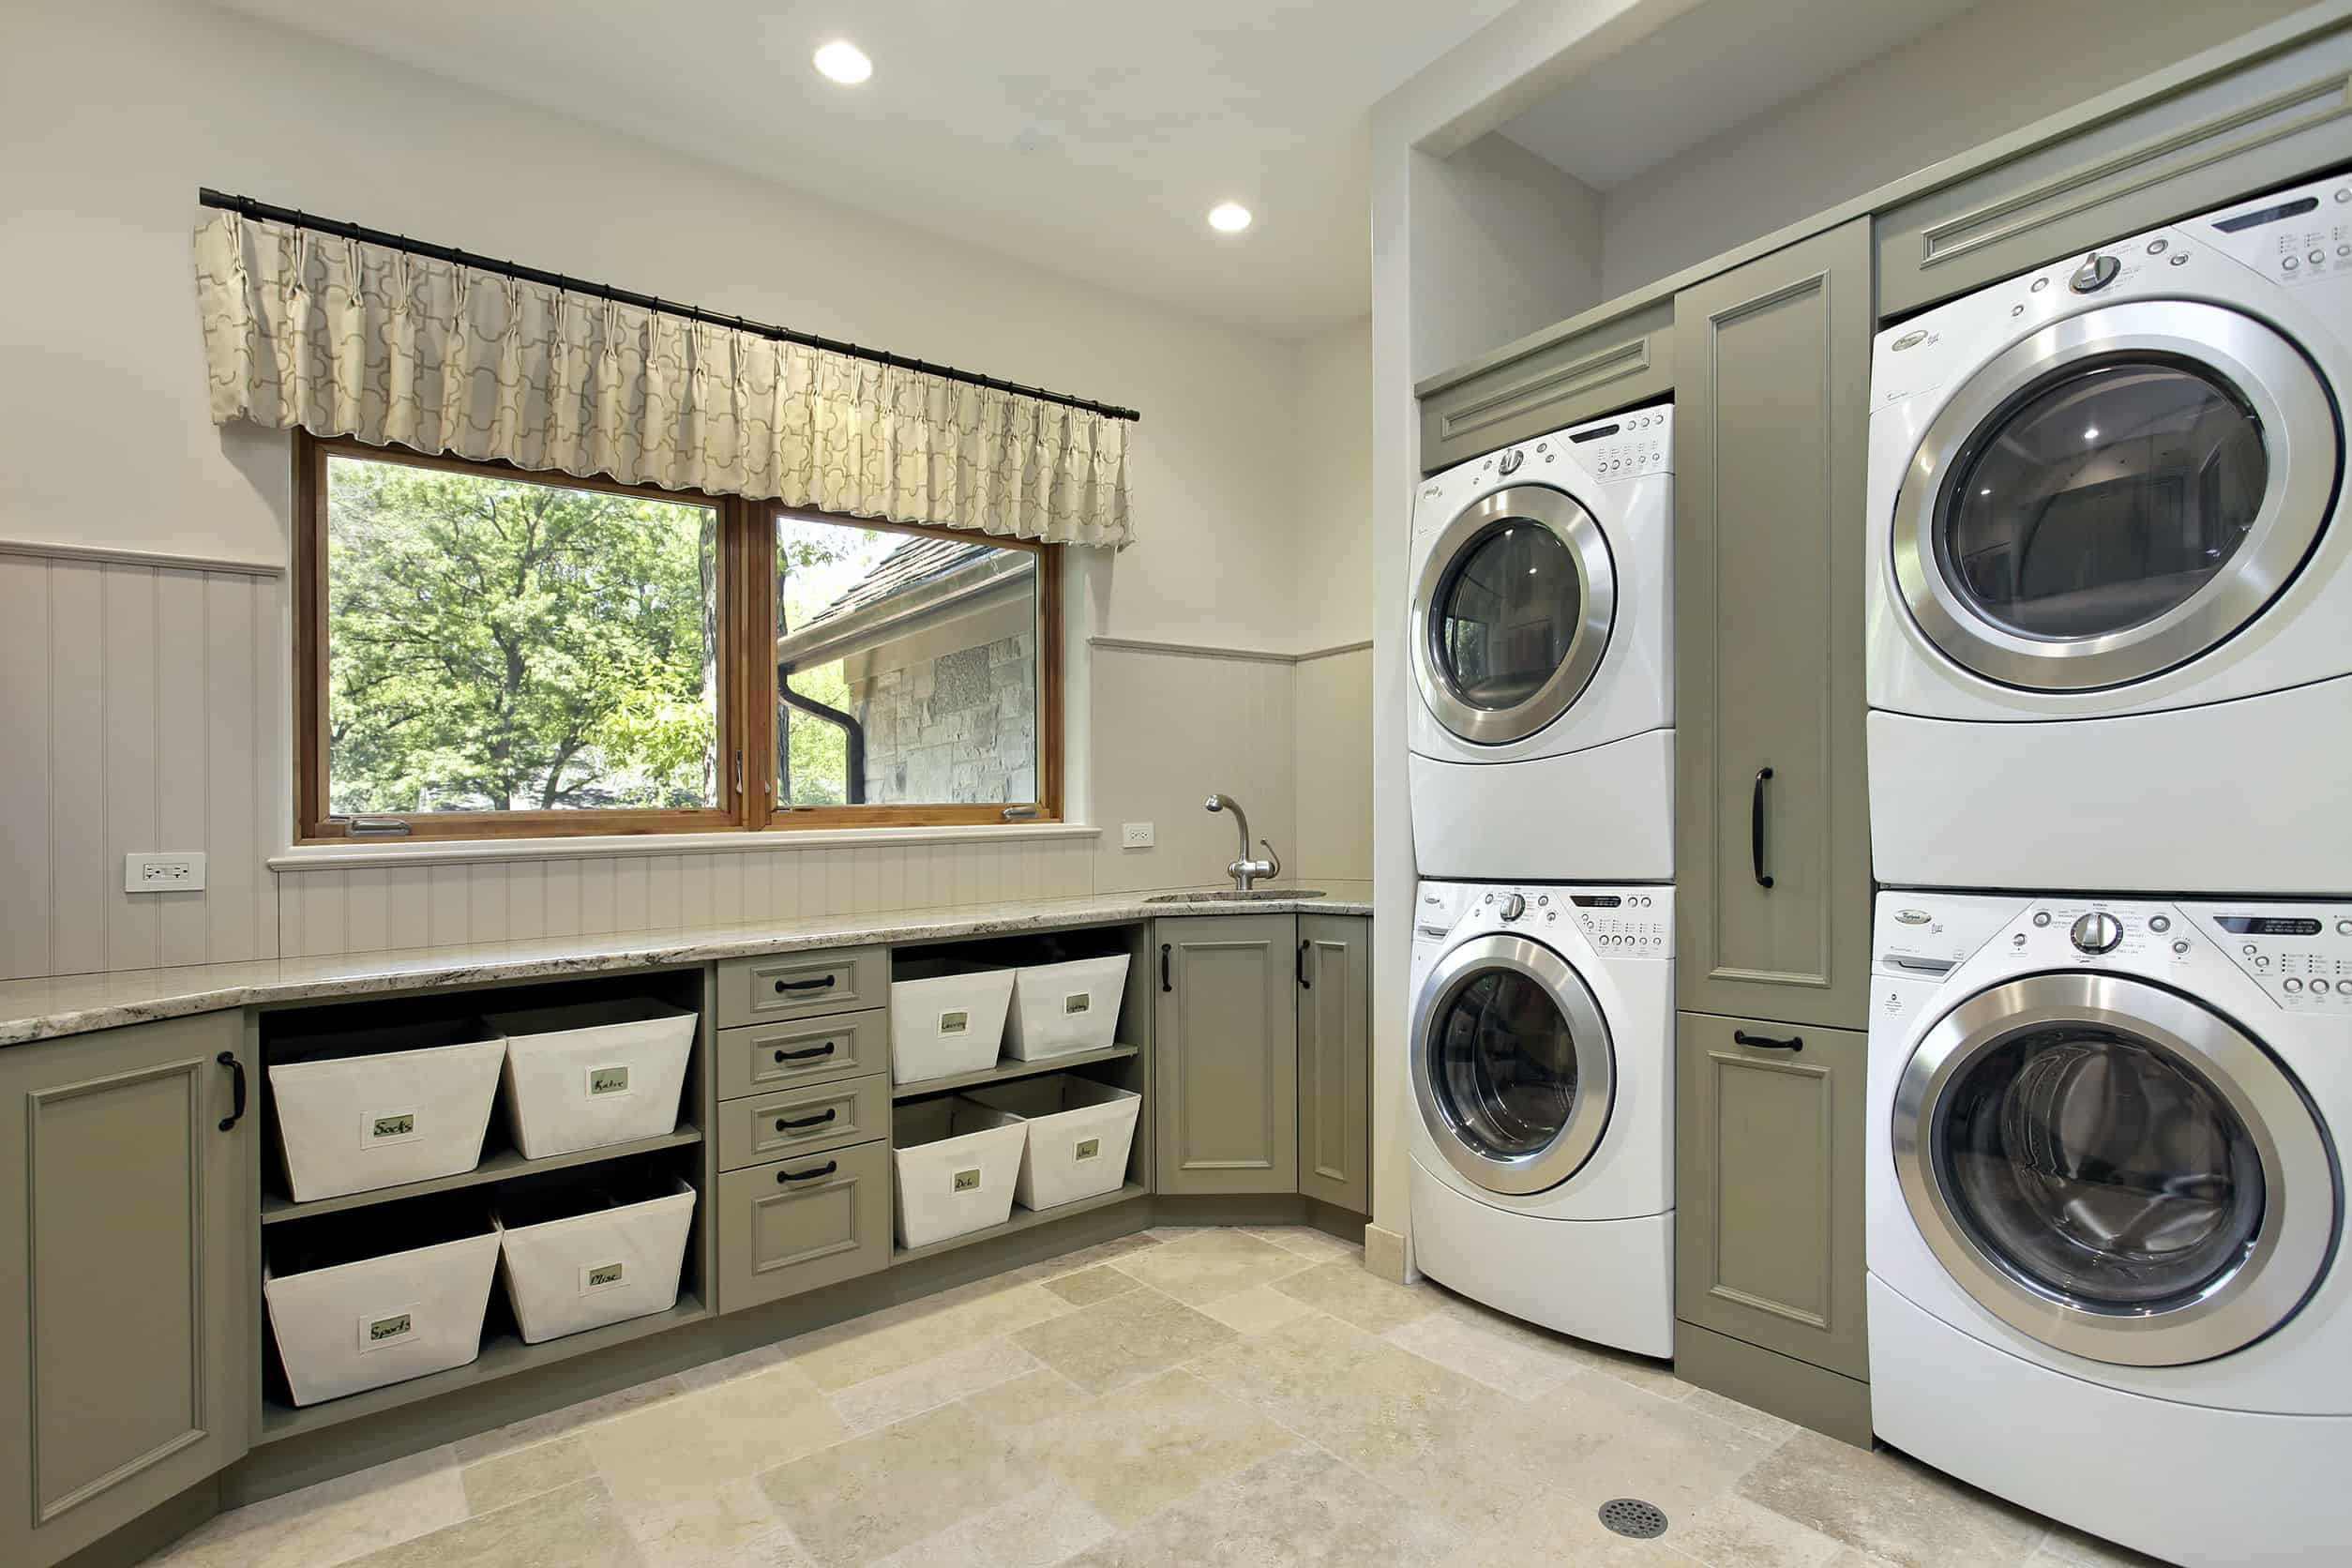 modern laundry room images - HD 1537×1024